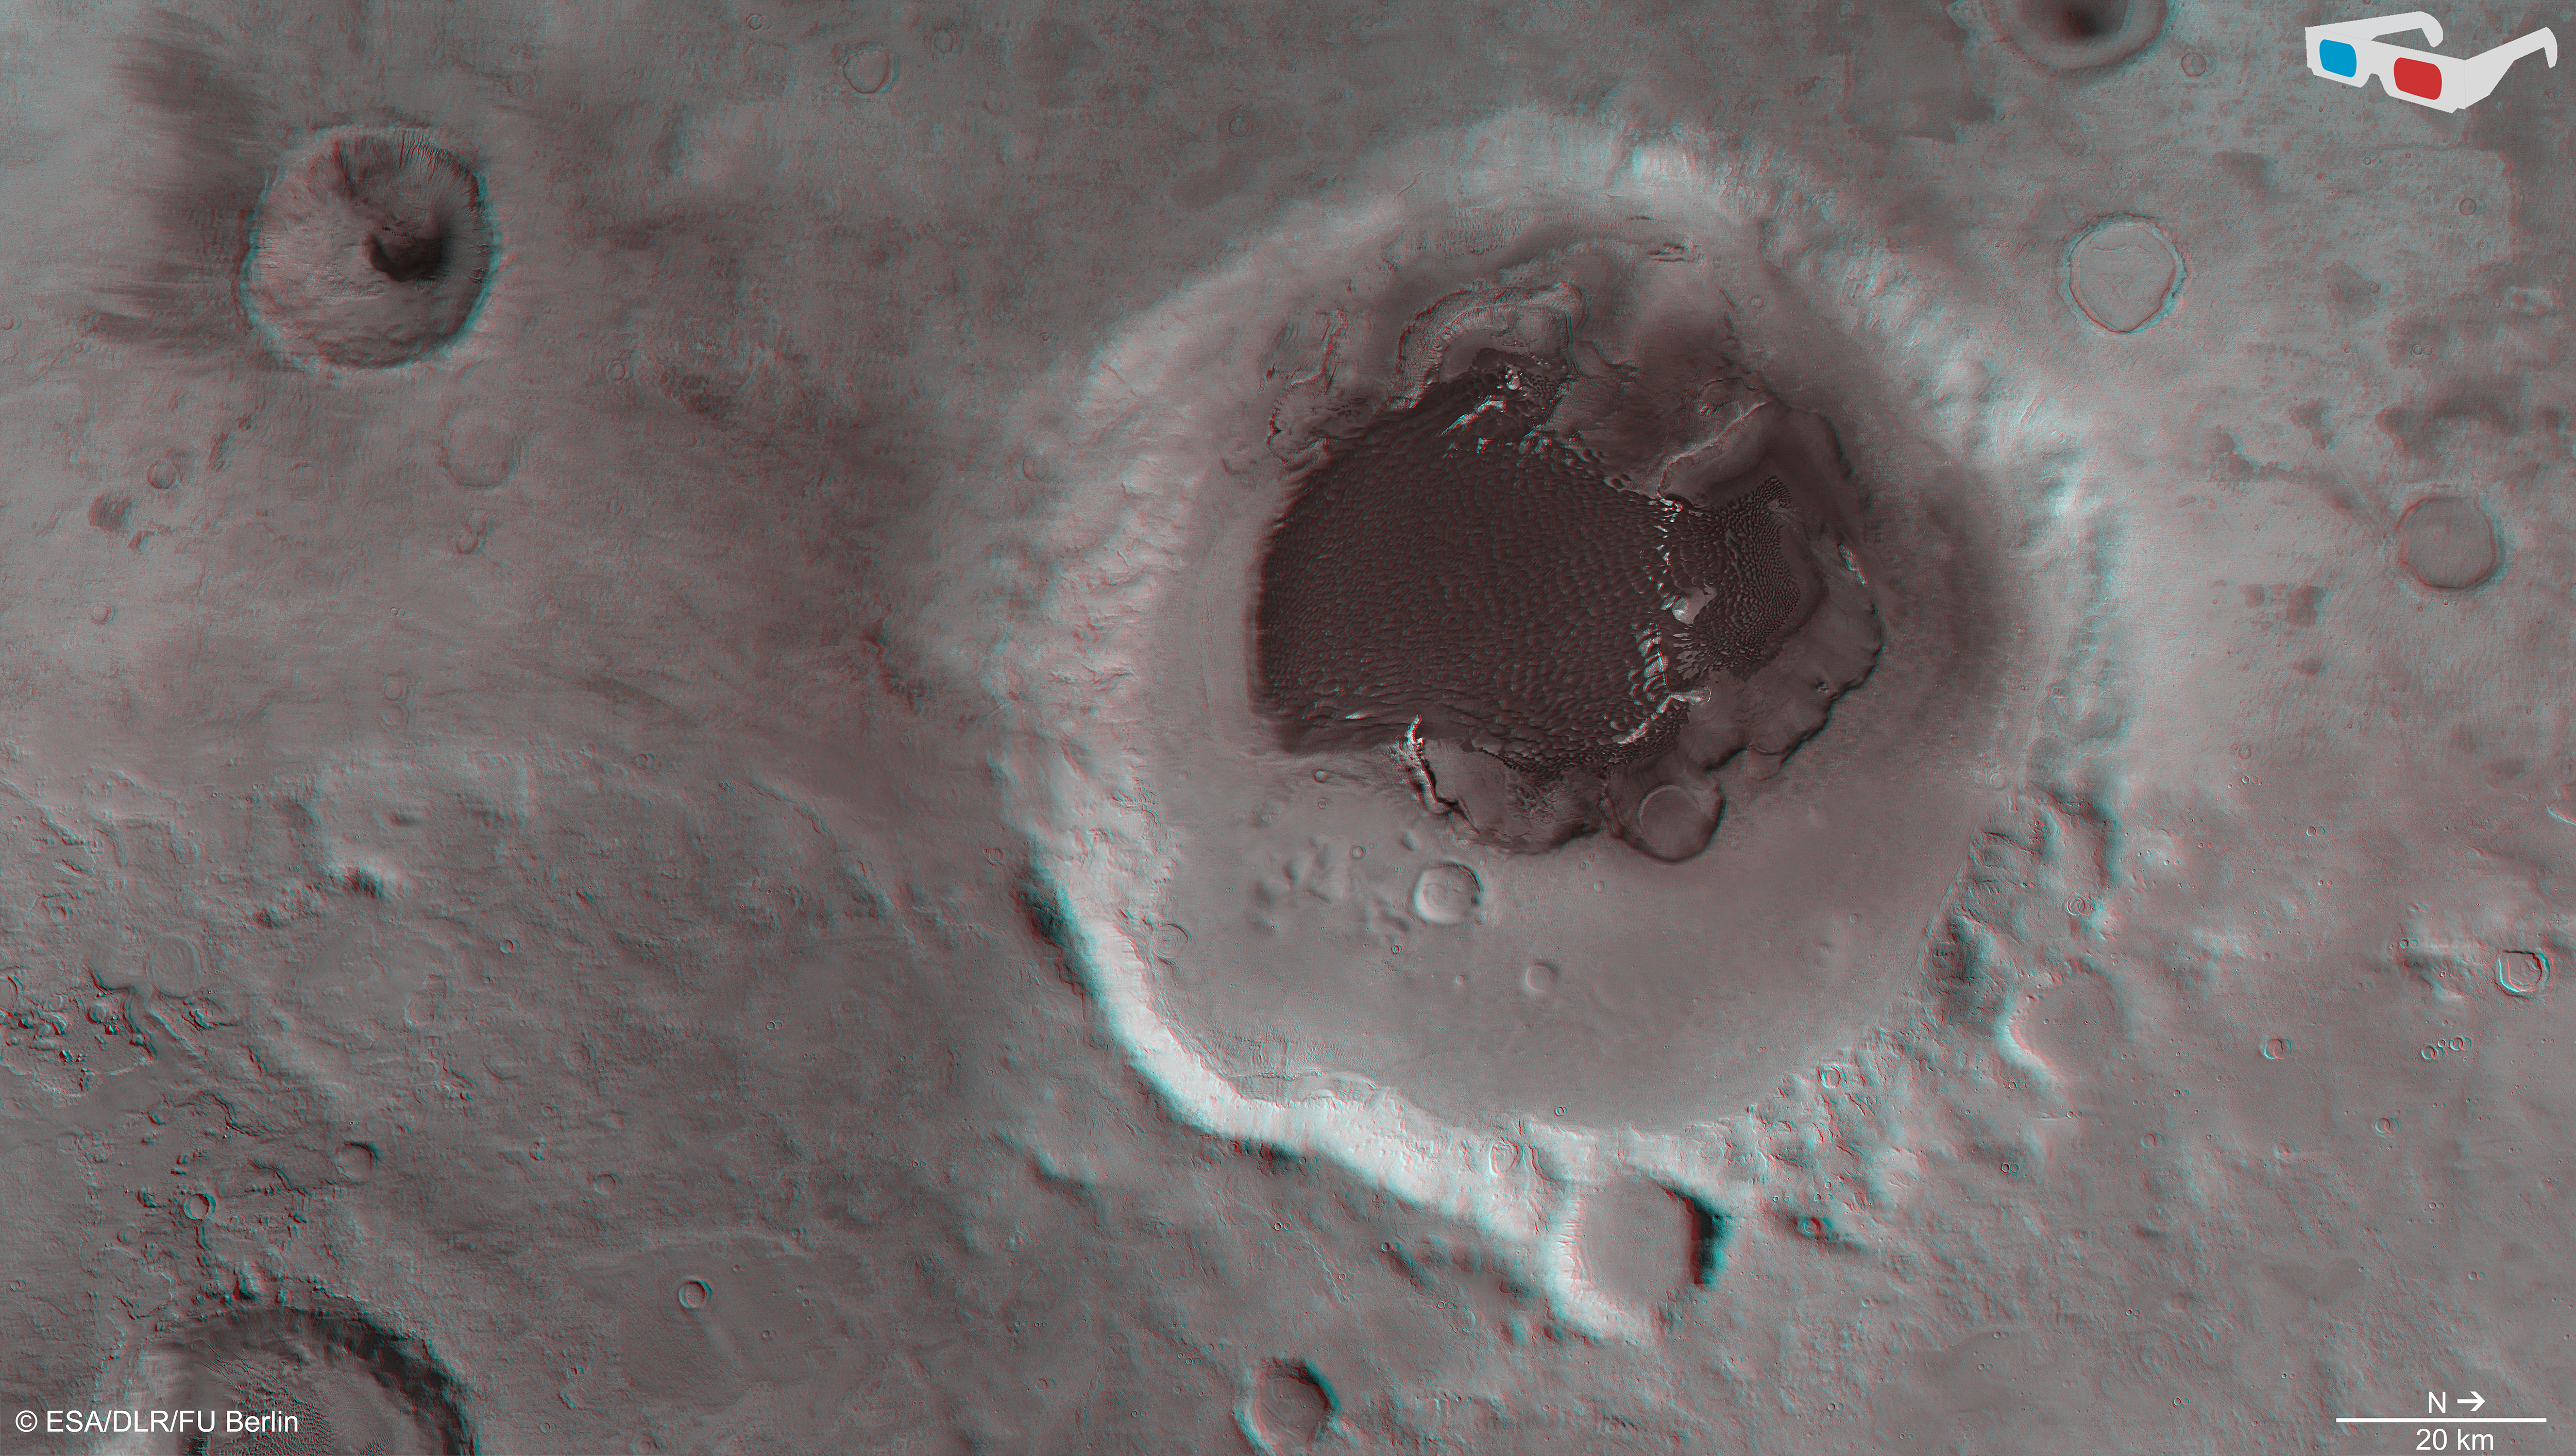 Data from the nadir channel and one stereo channel of the High Resolution Stereo Camera on Mars Express have been combined to produce this anaglyph 3D image, which can be viewed using stereoscopic glasses with red–green or red–blue filters.The image focuses on Rabe crater and its intricate dune field, material that has been shaped by prevailing winds. The image was created using data acquired with the High Resolution Stereo Camera on Mars Express on 7 December 2005 (orbit 2441) and 9 January 2014 (orbit 12736).Credit: ESA/DLR/FU Berlin